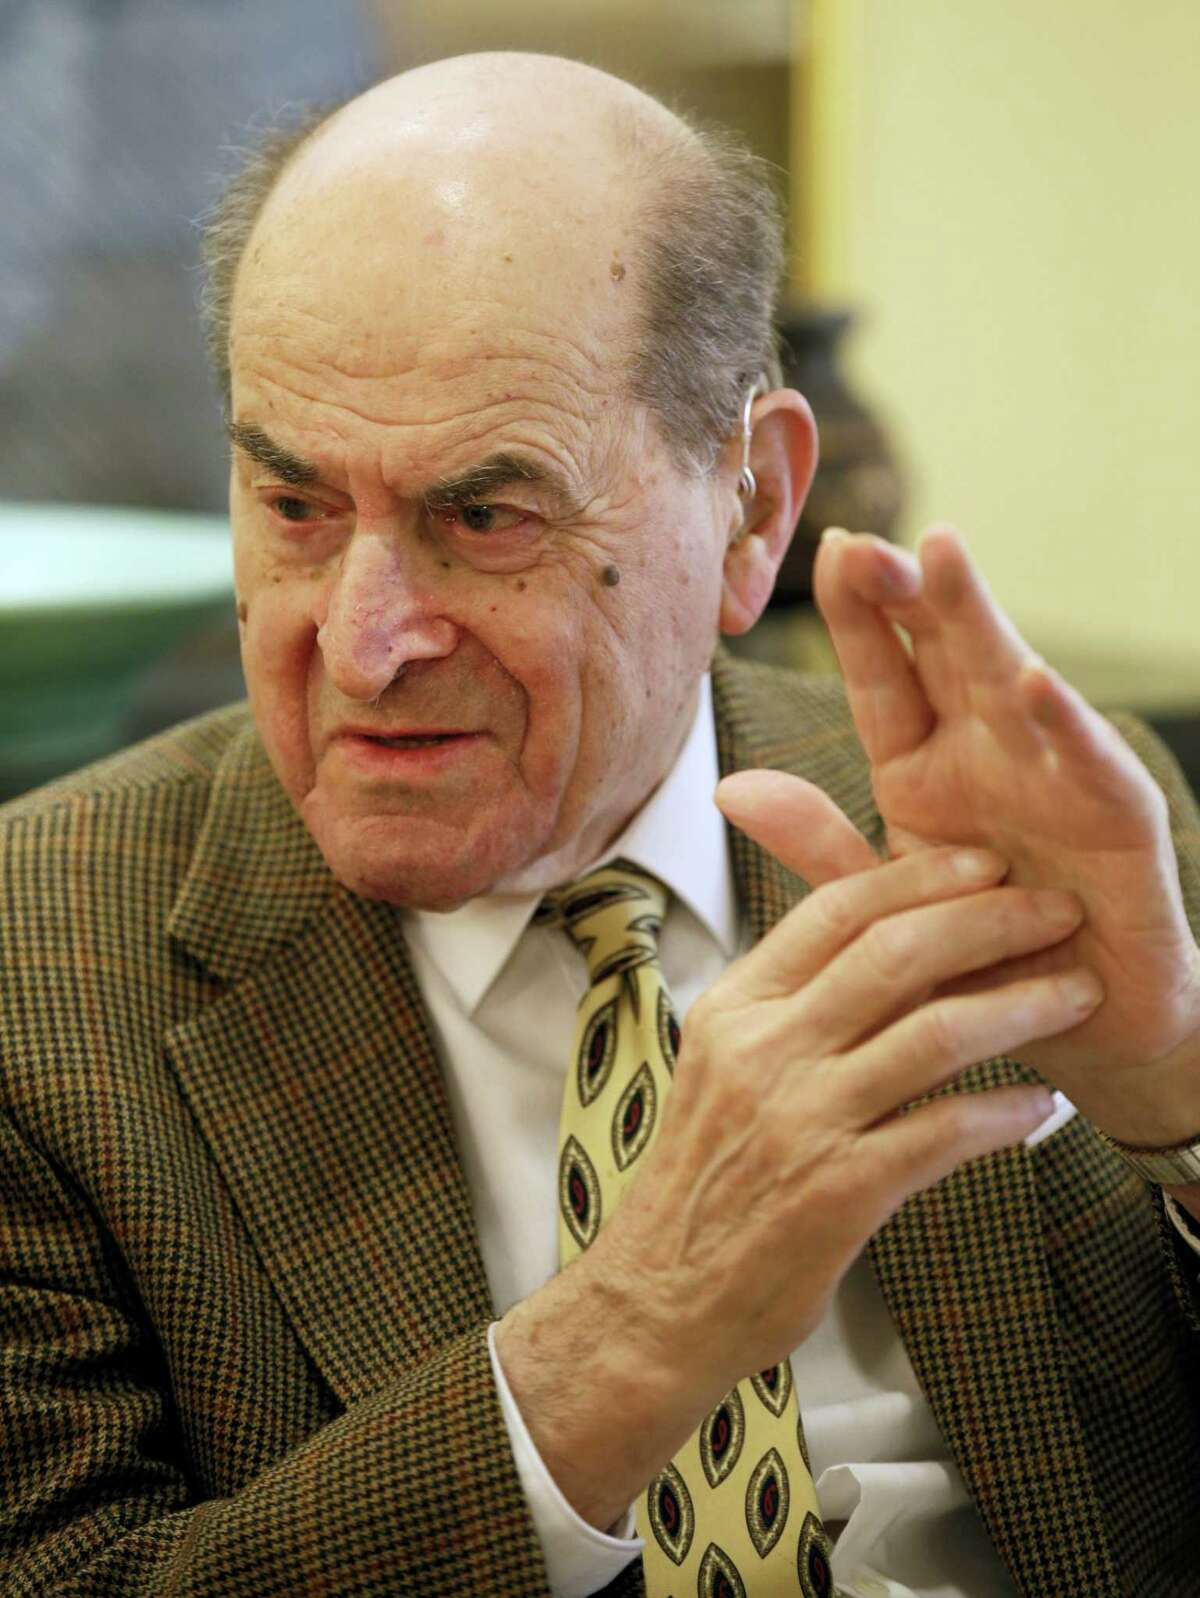 In this Feb. 5, 2014, file photo, Dr. Henry Heimlich describes the maneuver he developed to help clear obstructions from the windpipes of choking victims, while being interviewed at his home in Cincinnati. Heimlich recently used the emergency technique for the first time himself to save a woman choking on food at his senior living center. Heimlich said Thursday, May 26, 2016, that he has demonstrated the well-known maneuver many times through the years but had never before used it on a person who was choking.